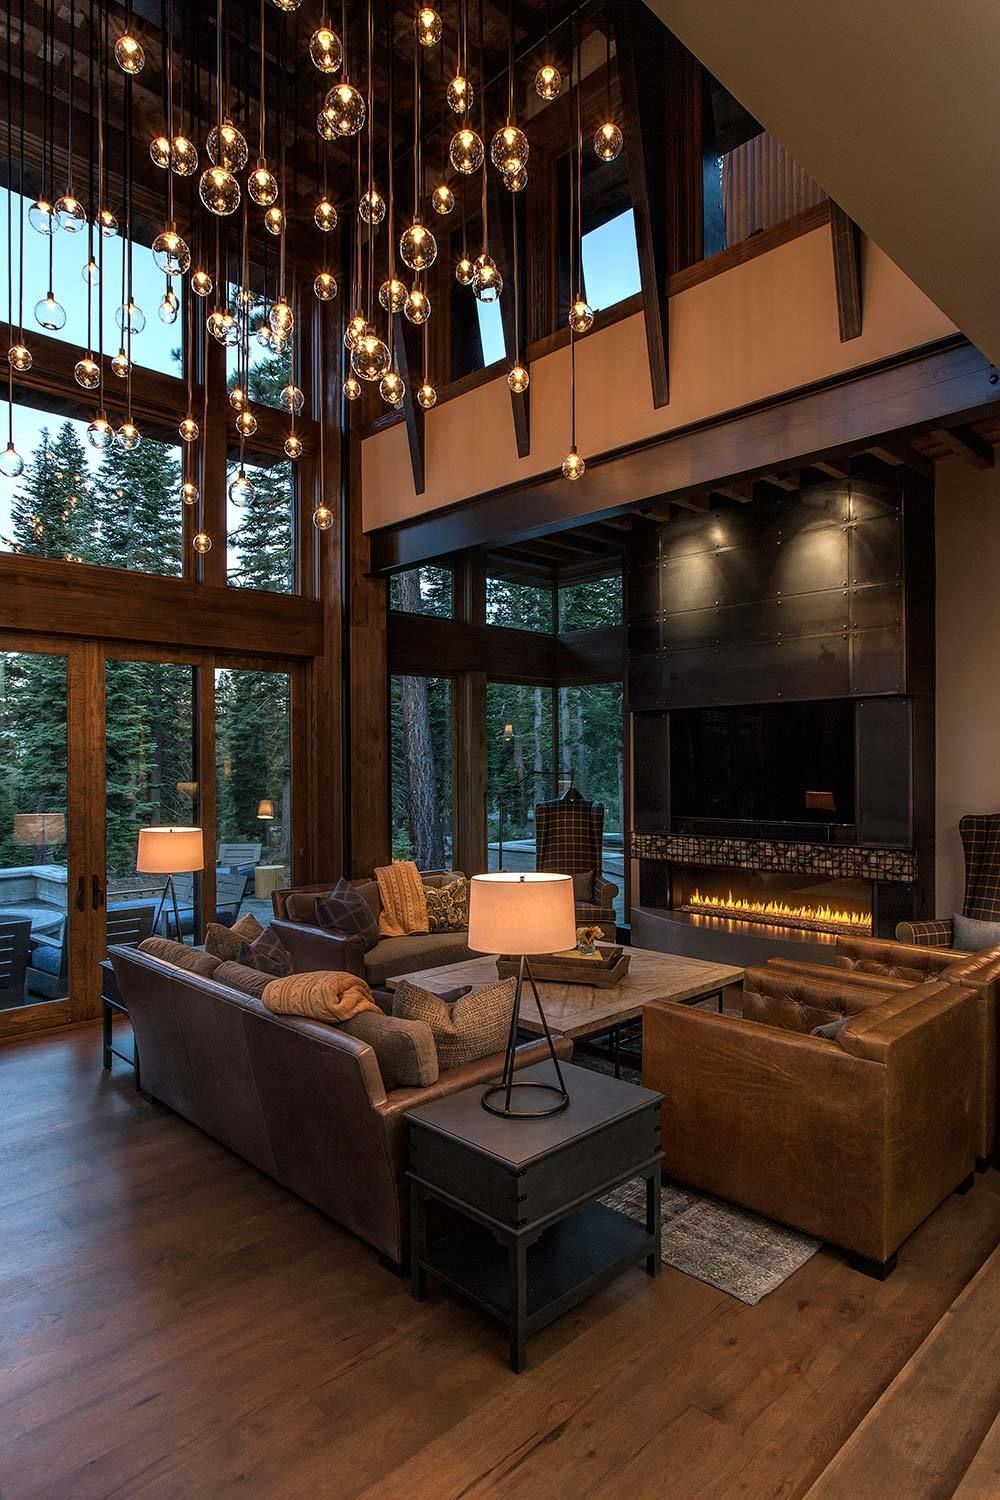 Lake tahoe getaway features contemporary barn aesthetic for Arredamento case moderne